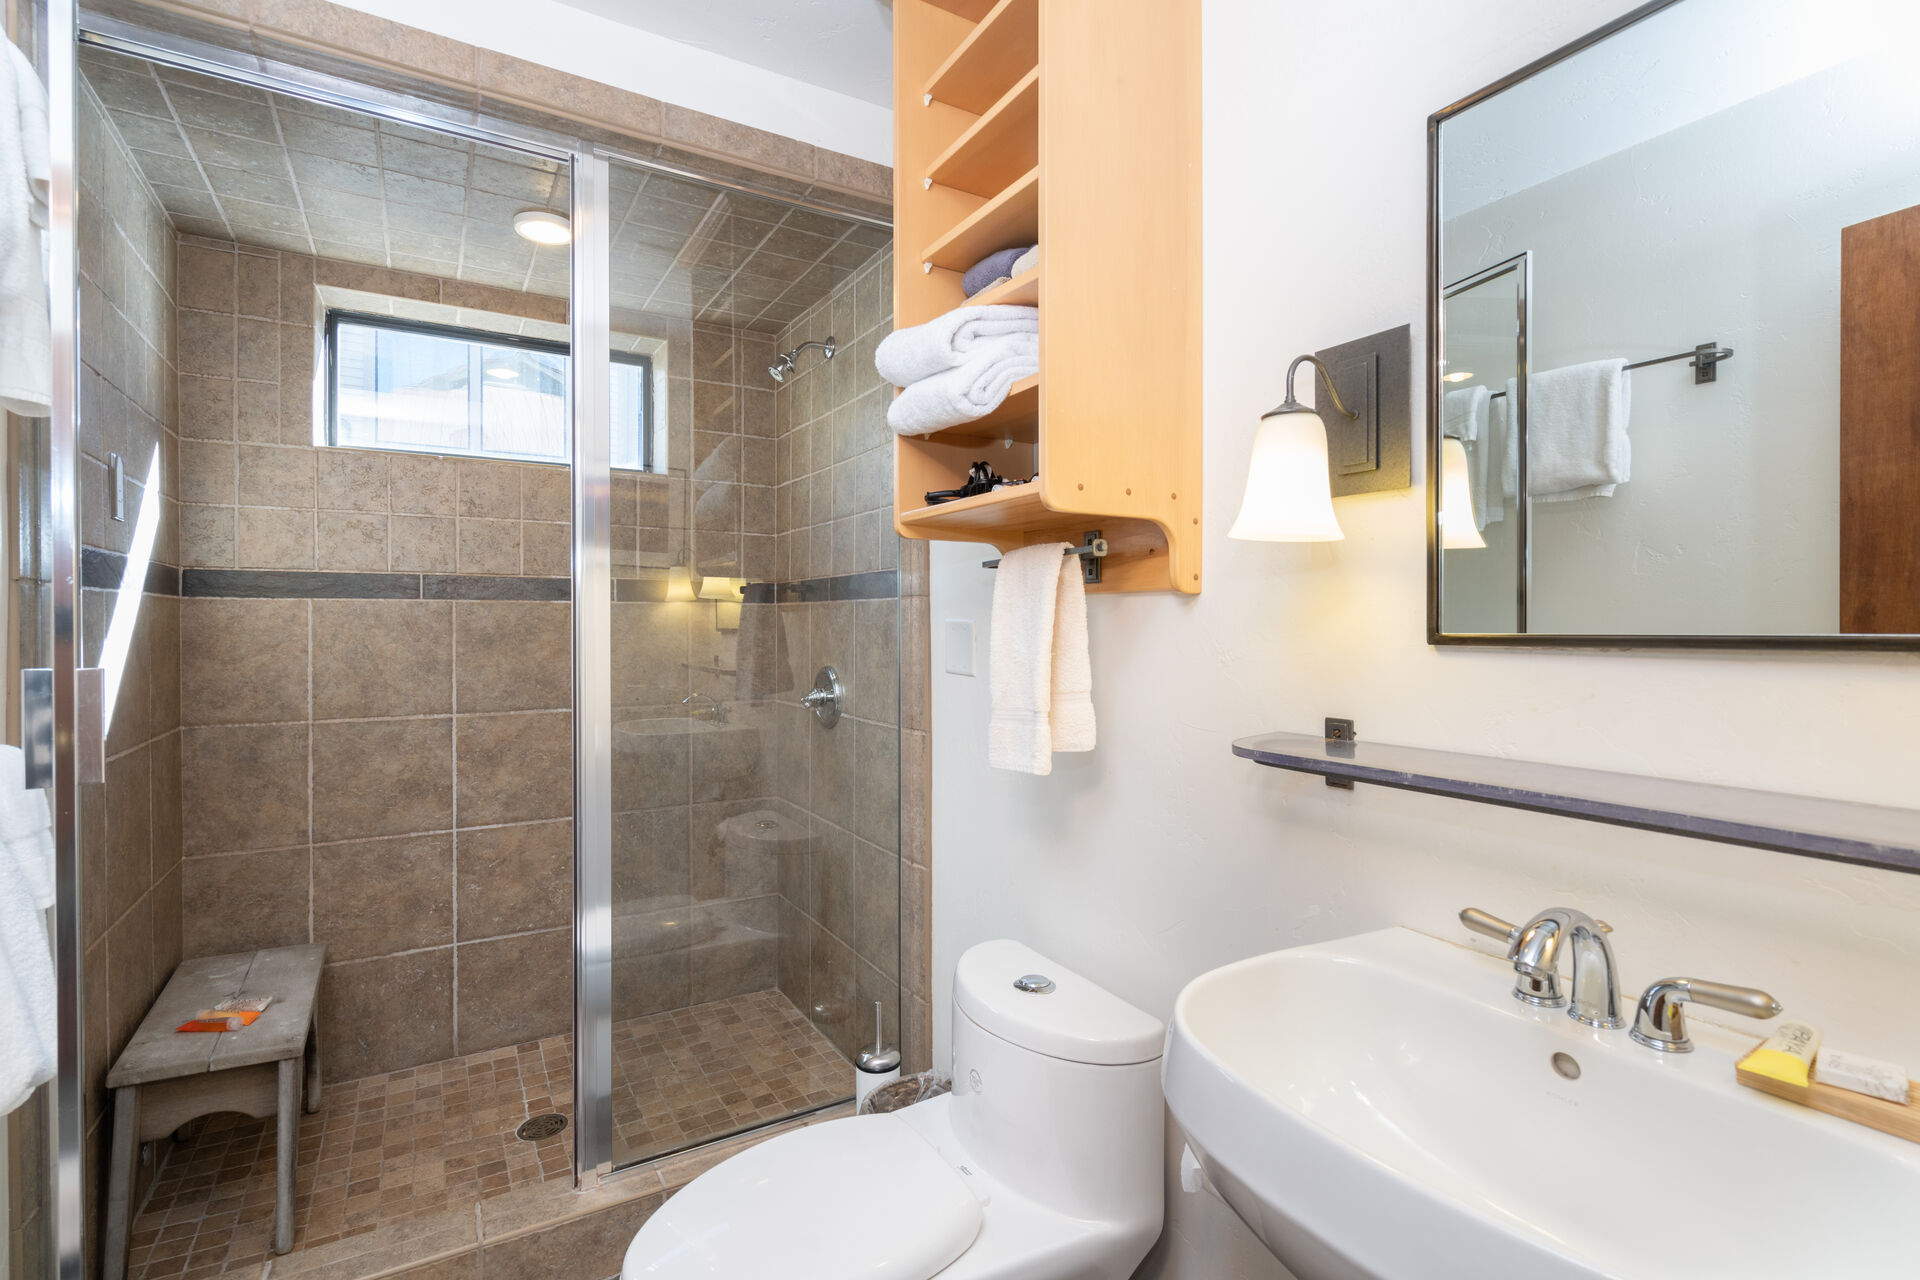 Bathroom with Pedestal Sink and Shower